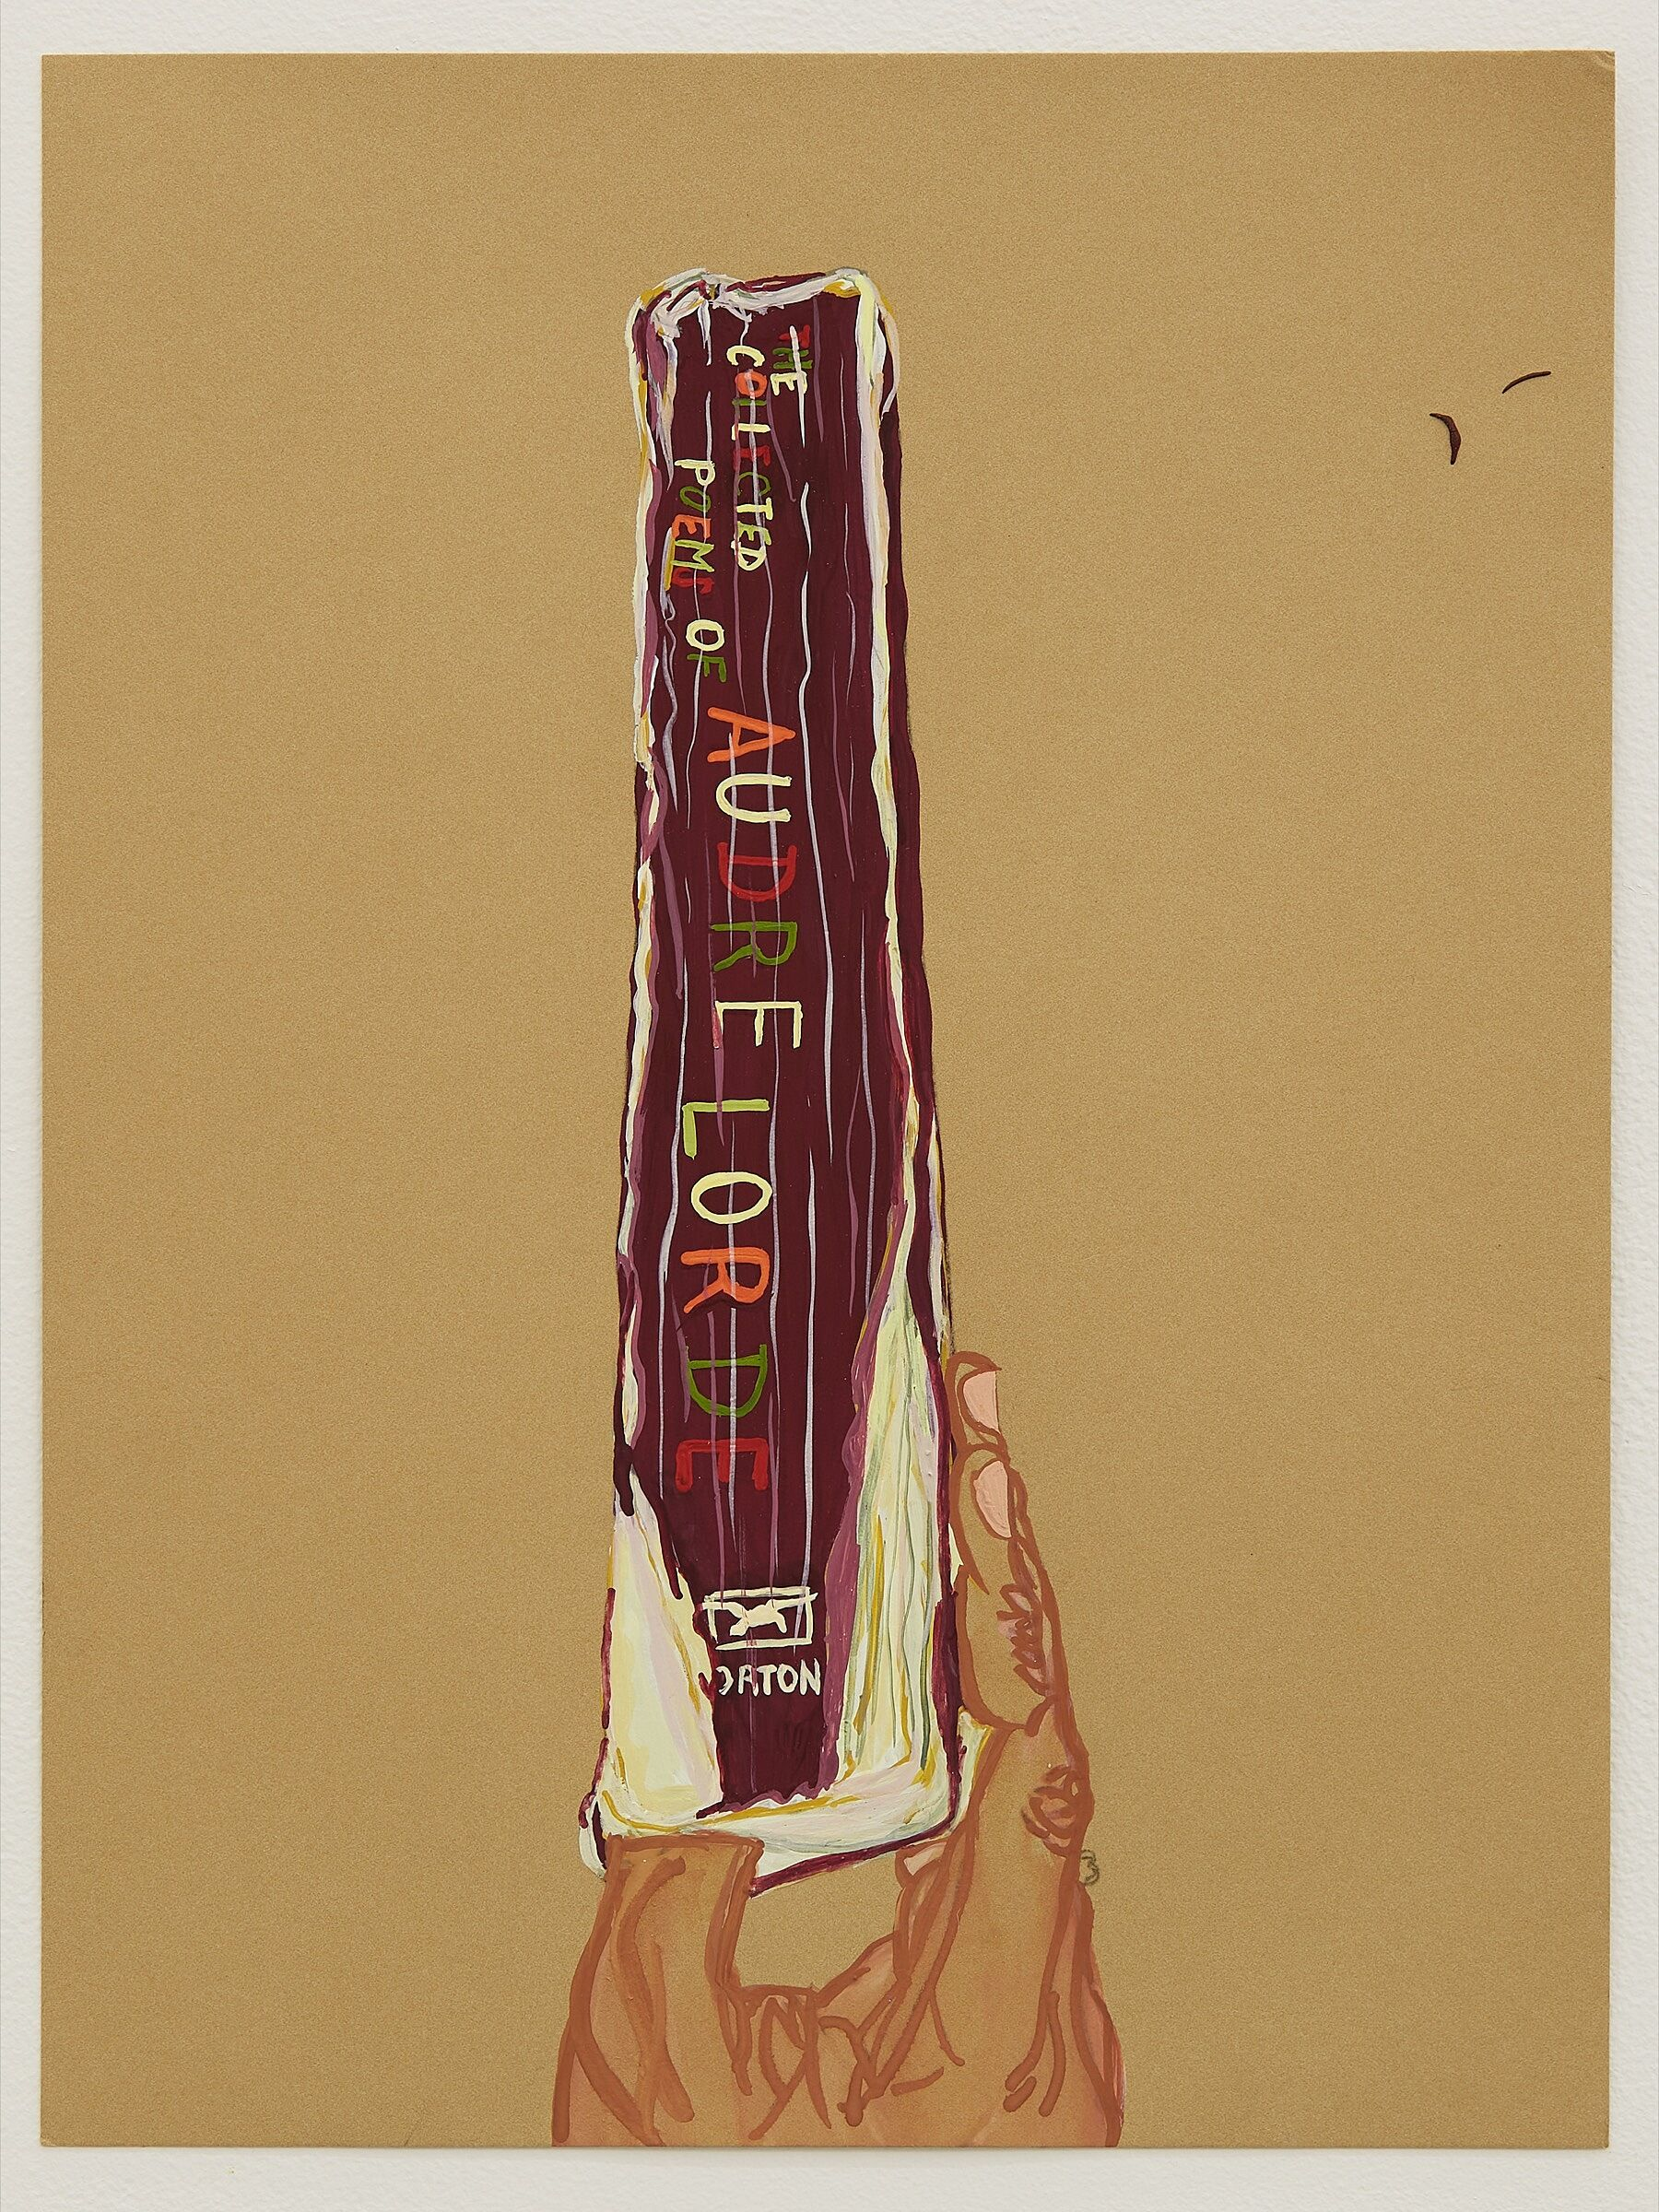 A painting of a hand holding up a book.